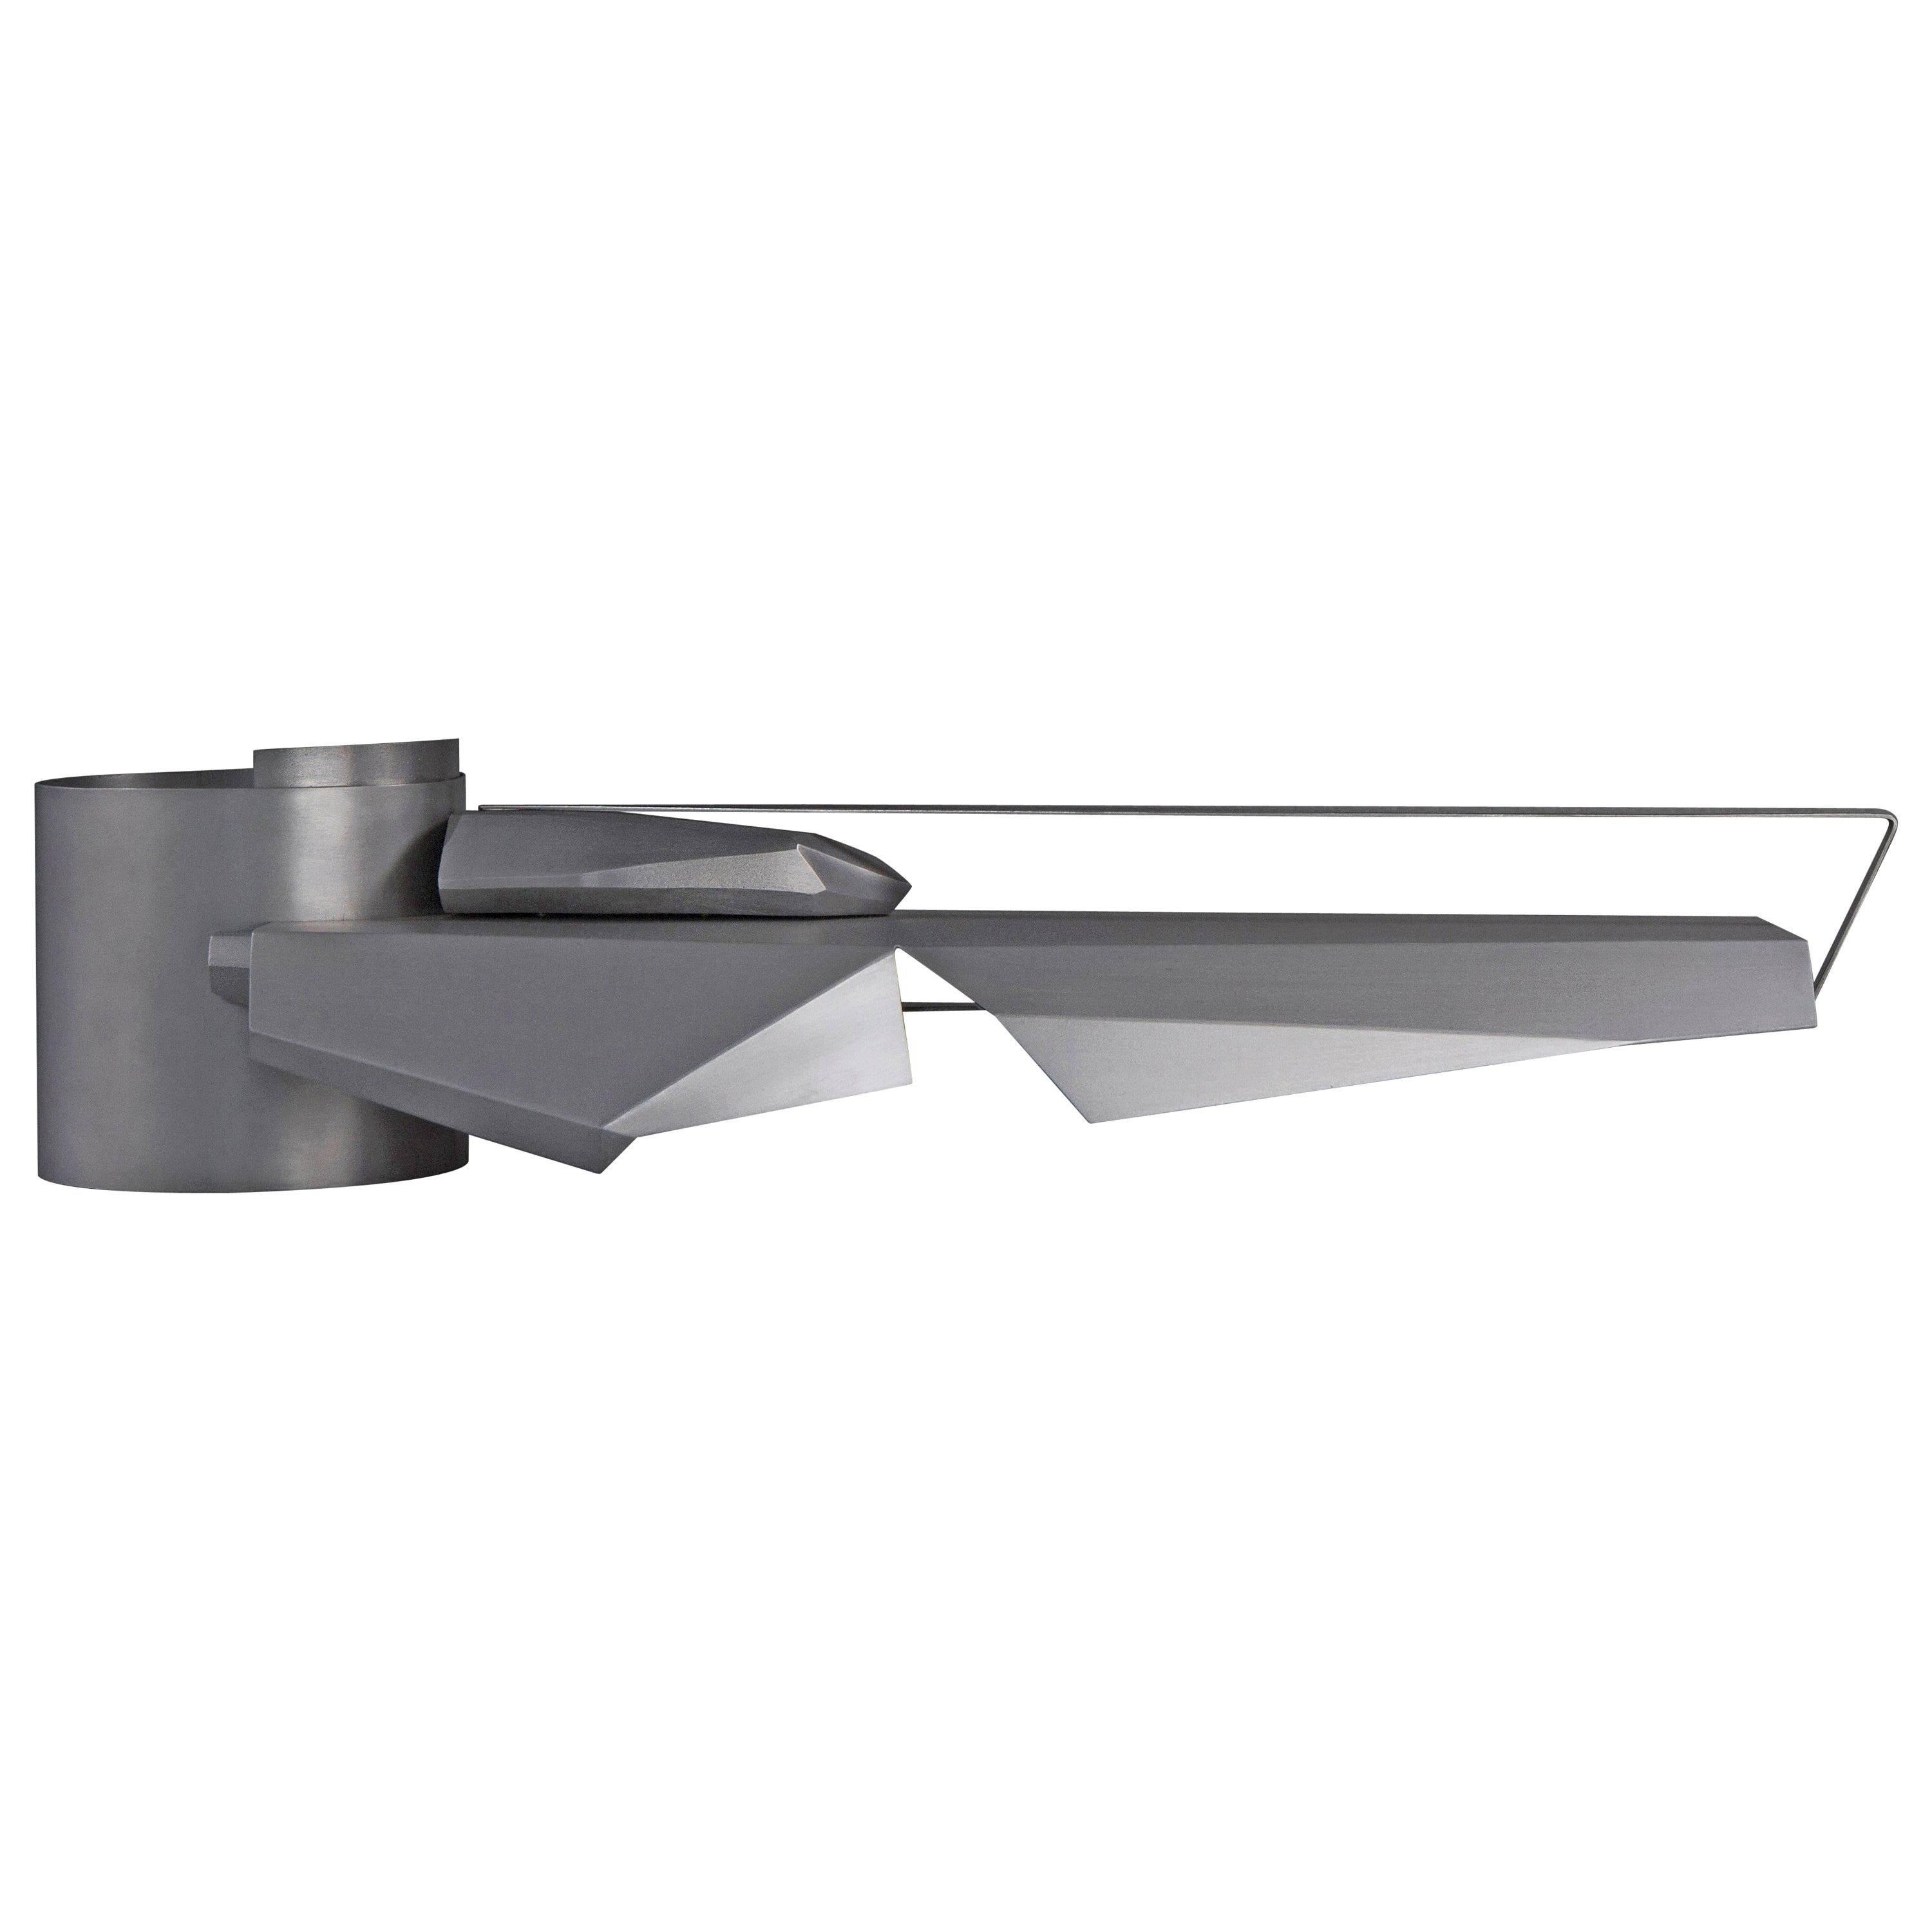 Sculpture by Todomuta Studio Brushed and Polished Aluminum Silver